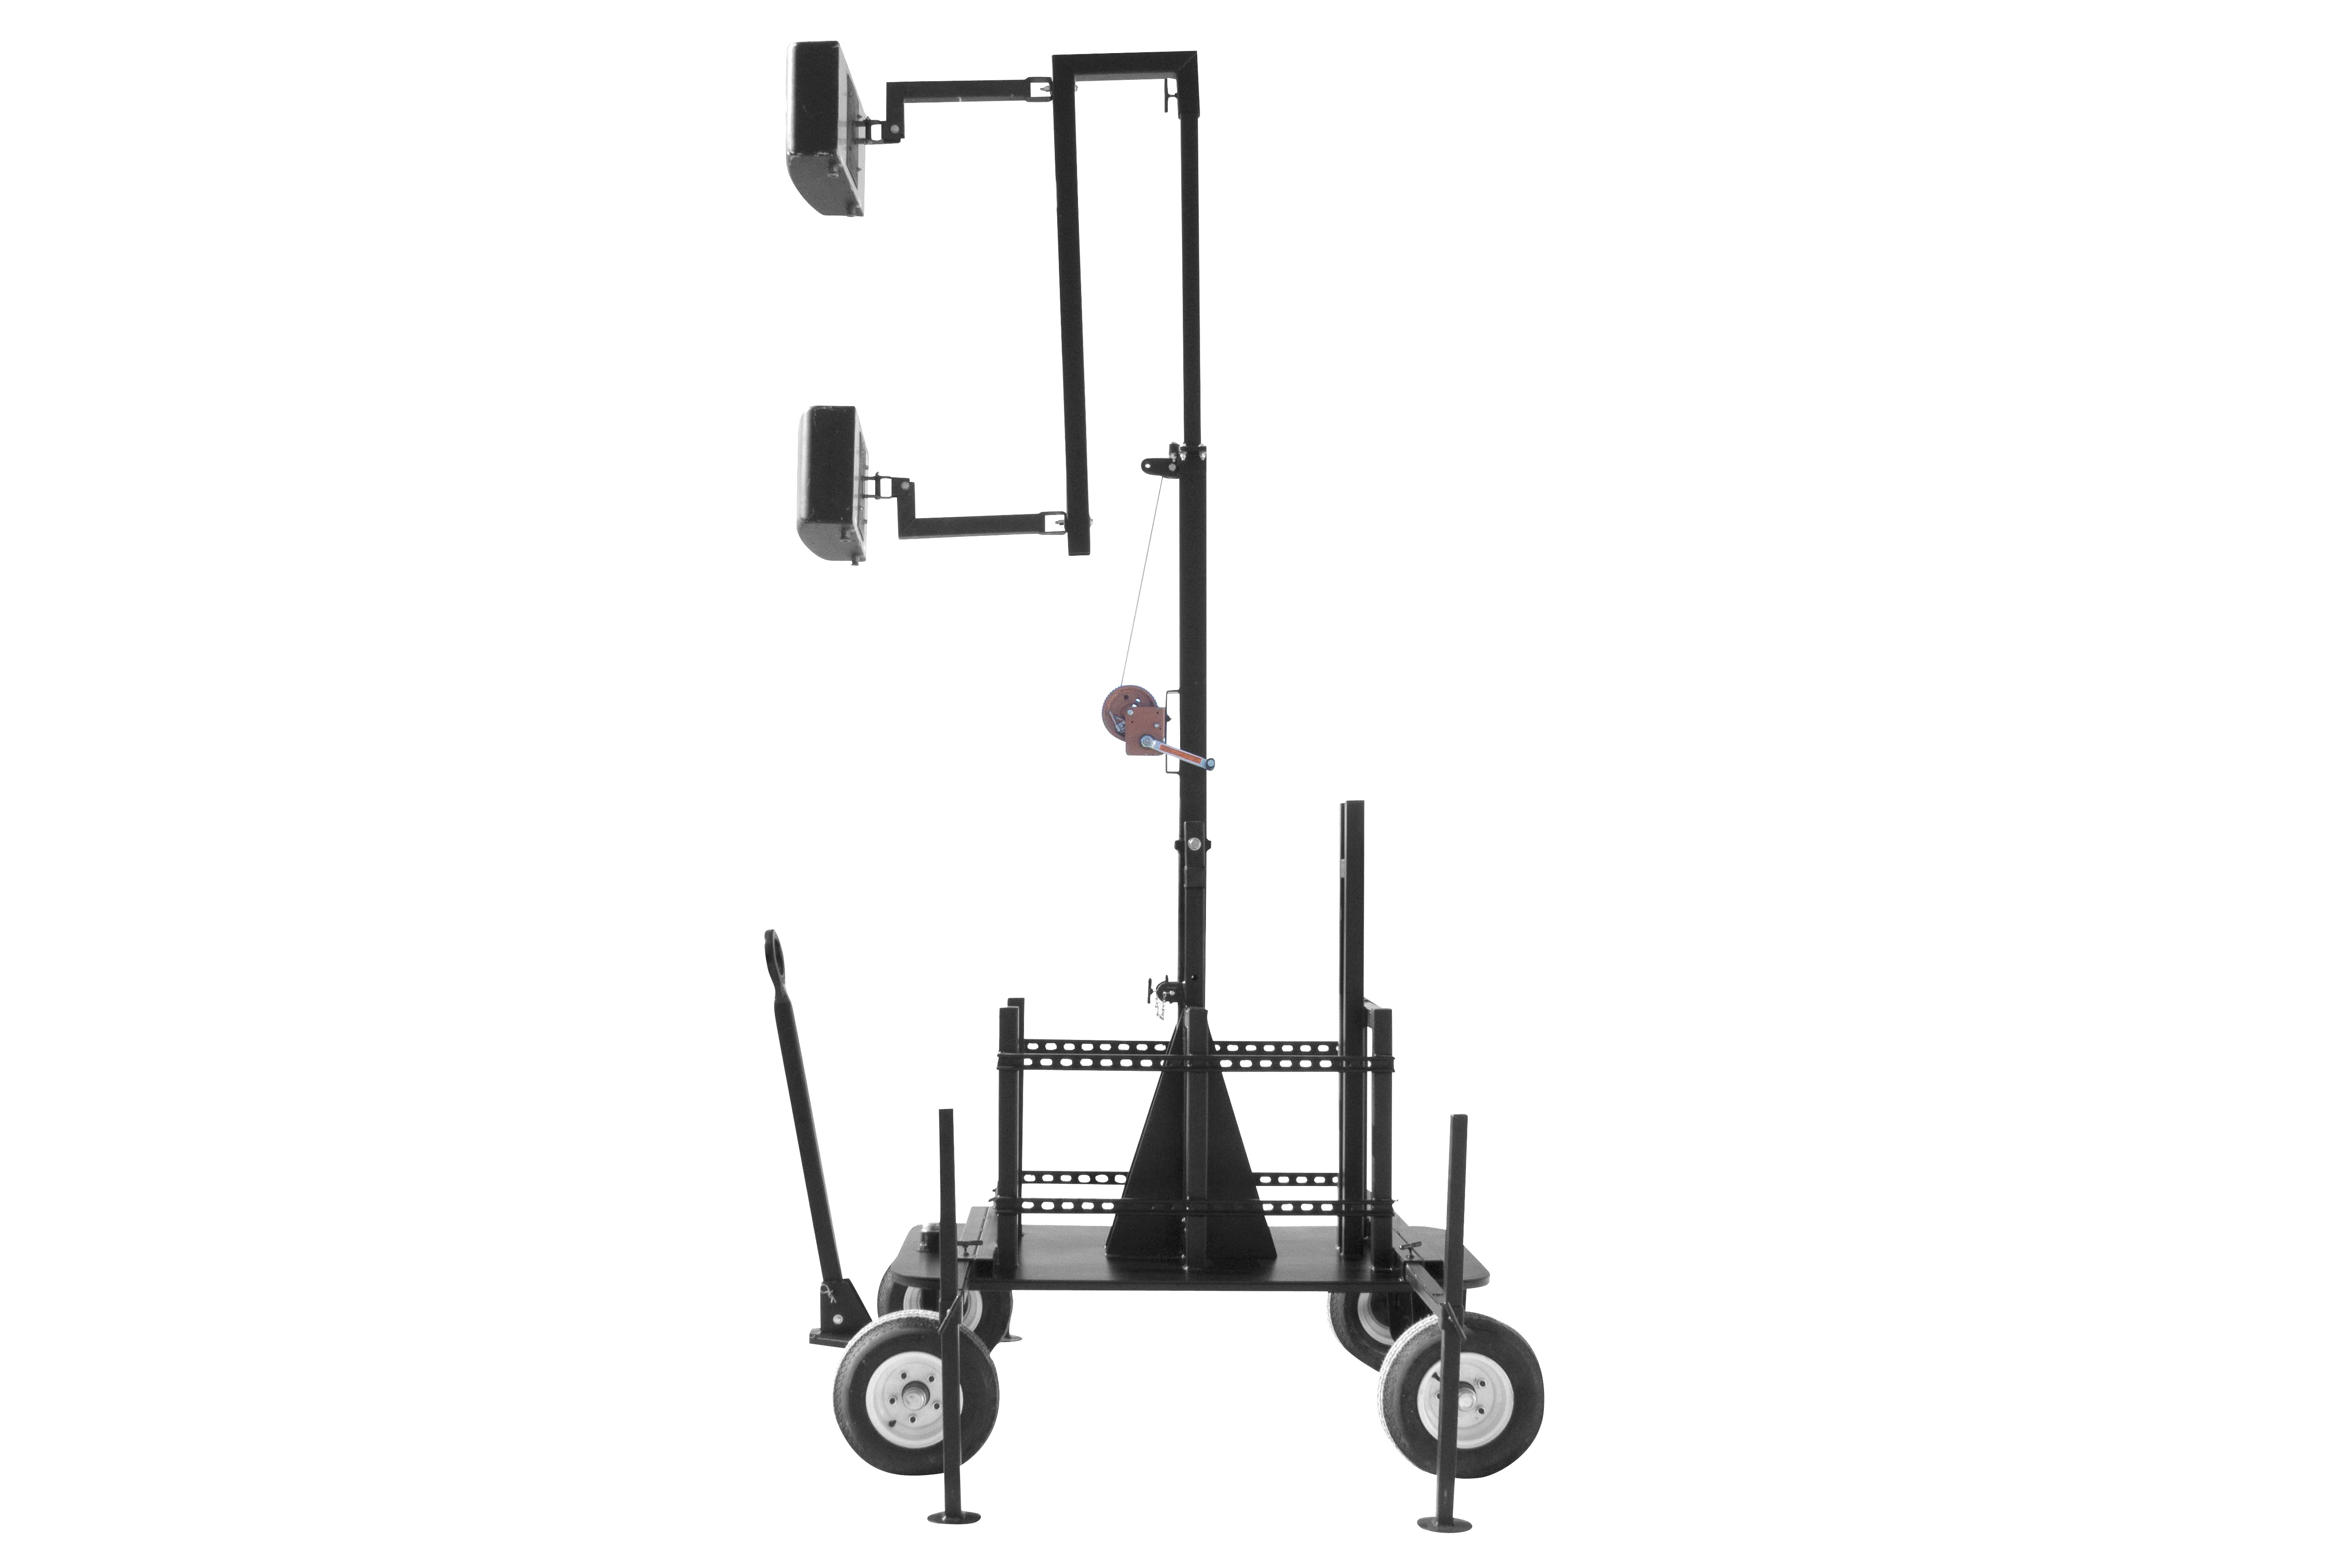 Larson Electronics Releases Portable Cell on Wheels for